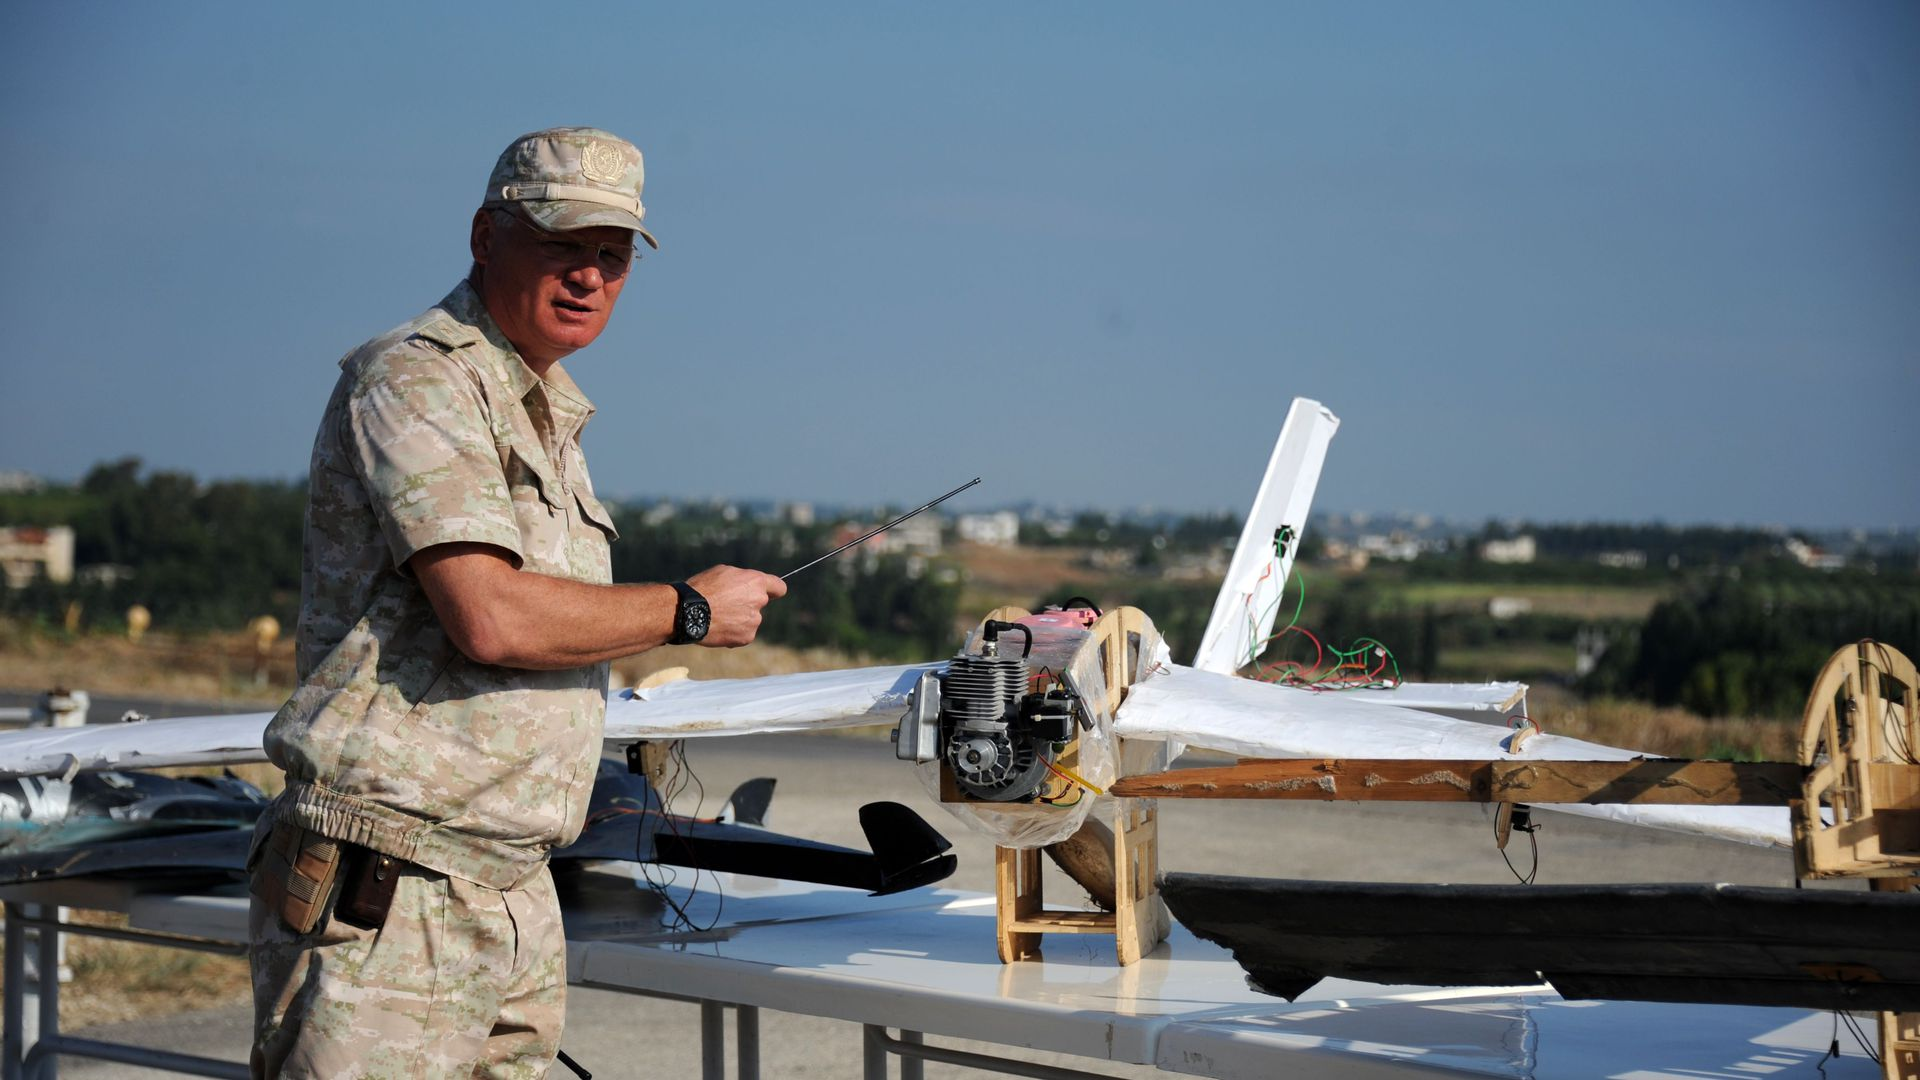 Drones are now being used by nearly half of the world's militaries